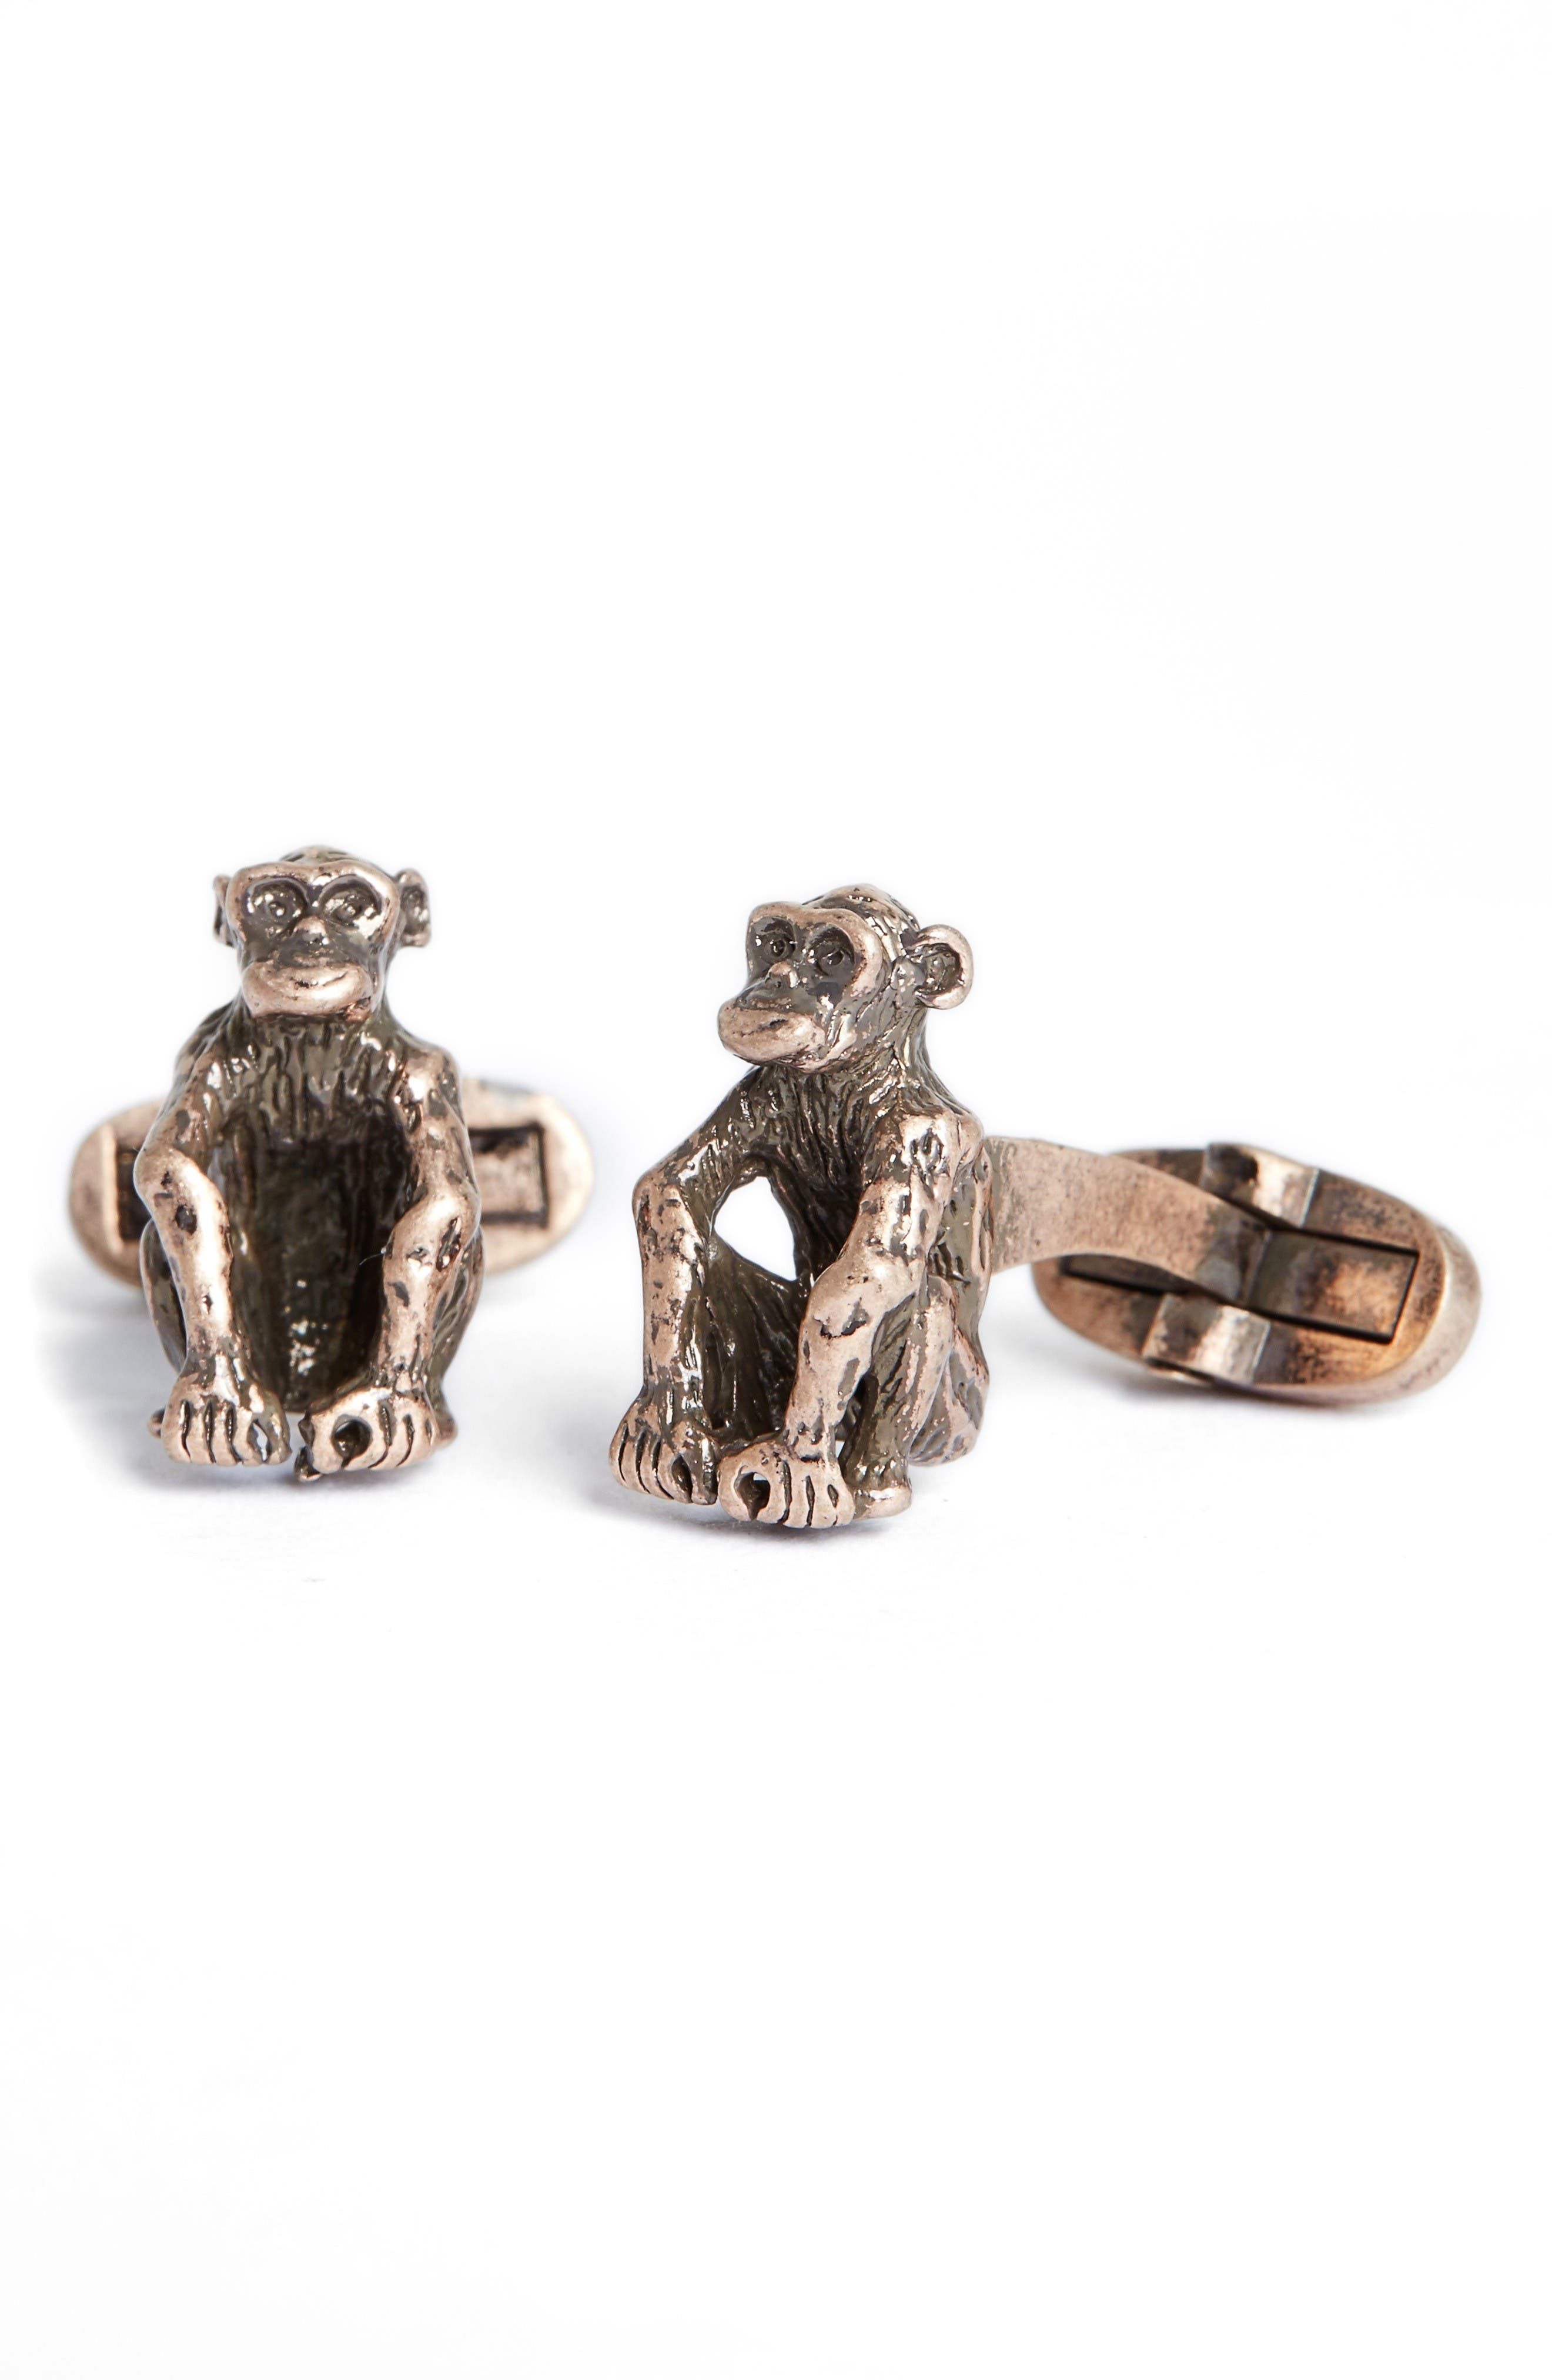 Paul Smith Monkey Cuff Links